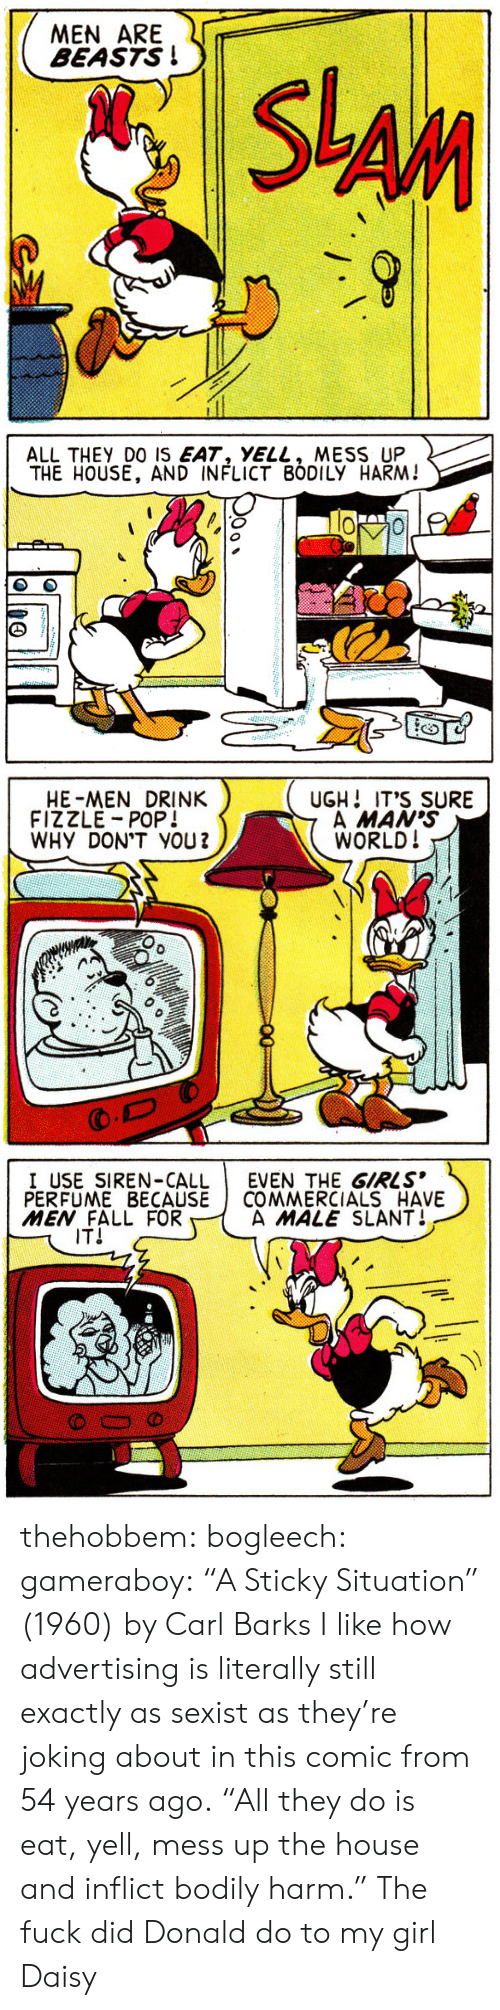 """Bogleech: MEN ARE f  BEASTS!  S-An   ALL THEY DO IS EAT, YELL, MESS UP  THE HOUSE, AND INFLICT BODILY HARM!  (C   HE-MEN DRINK  FIZZLE POP!  WHY DON'T YOU2  UGH! IT'S SURE  A MAN's  WORLD!   I USE SIREN-CALLEVEN THE GIRLS  PERFUME BECAUSE I COMMERCIALS HAVE  MEN FALL FOR  A MALE SLANT↓  IT! thehobbem: bogleech:  gameraboy:  """"A Sticky Situation"""" (1960) by Carl Barks  I like how advertising is literally still exactly as sexist as they're joking about in this comic from 54 years ago.  """"All they do is eat, yell, mess up the house and inflict bodily harm."""" The fuck did Donald do to my girl Daisy"""